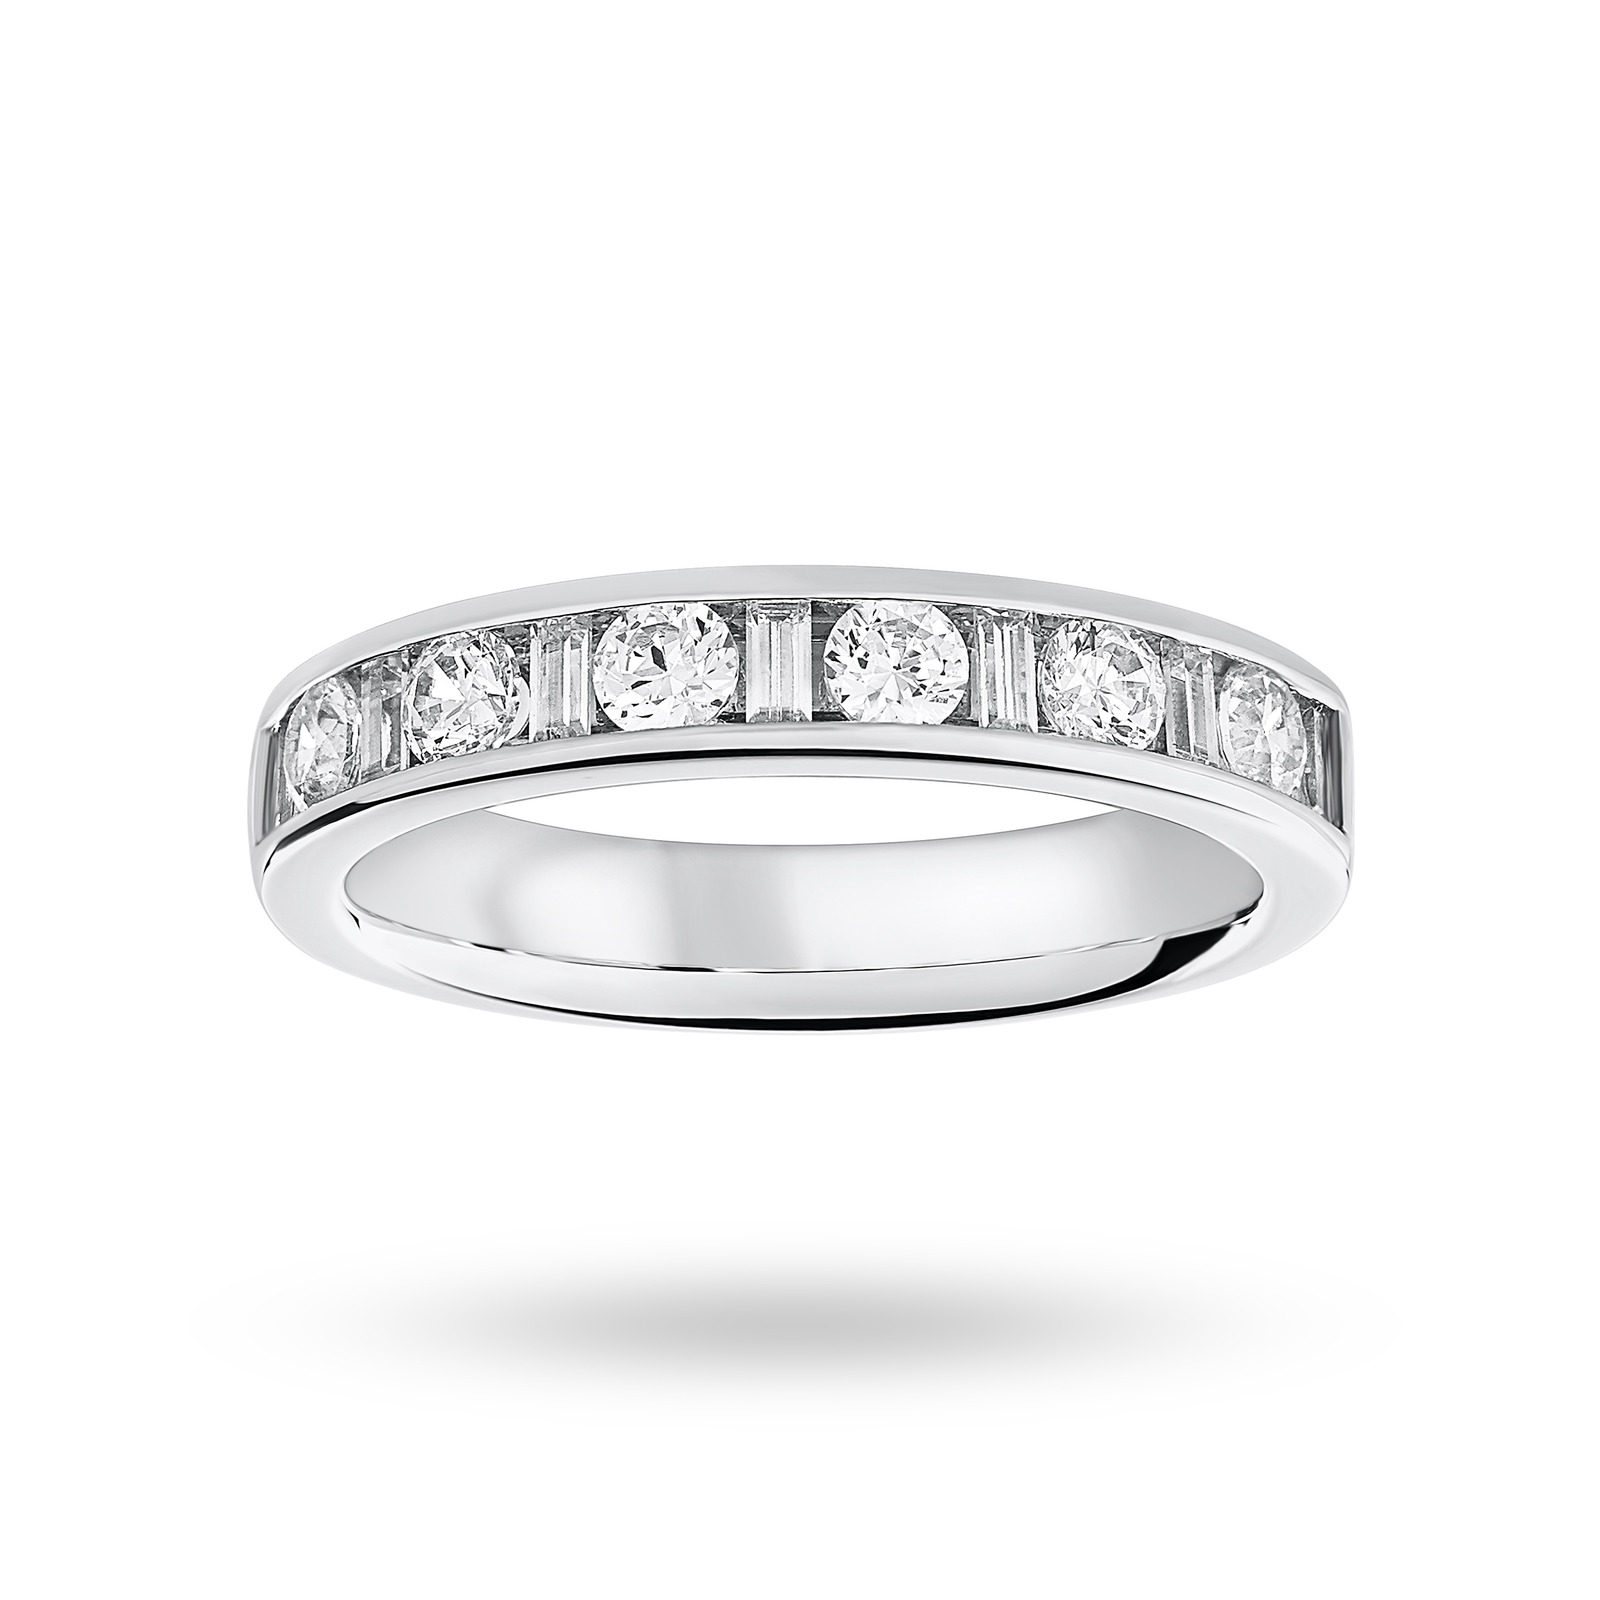 halo white anniversary wedding new band of bands rings in tw cut stone gold diamond princess